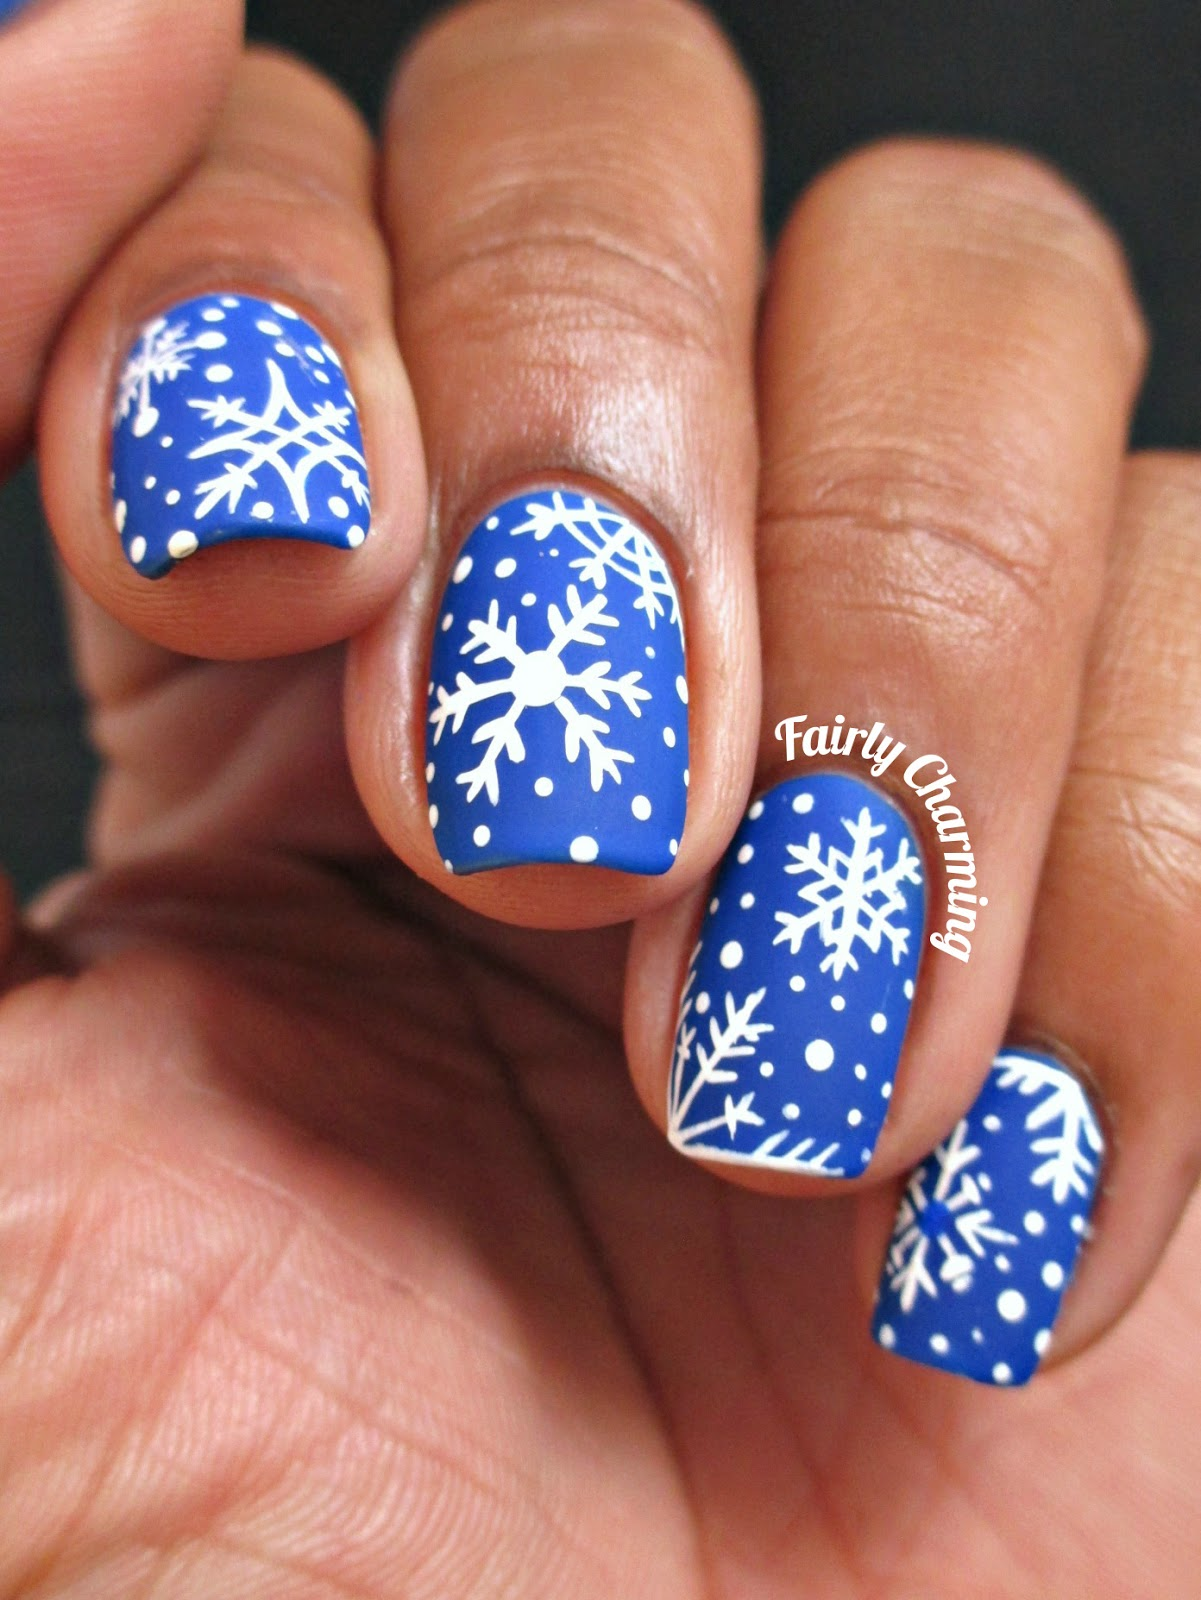 Christmas nail designs snowflakes christmas sowflakes tutorial nail art youtube christmas nail designs snowflakes prinsesfo Choice Image